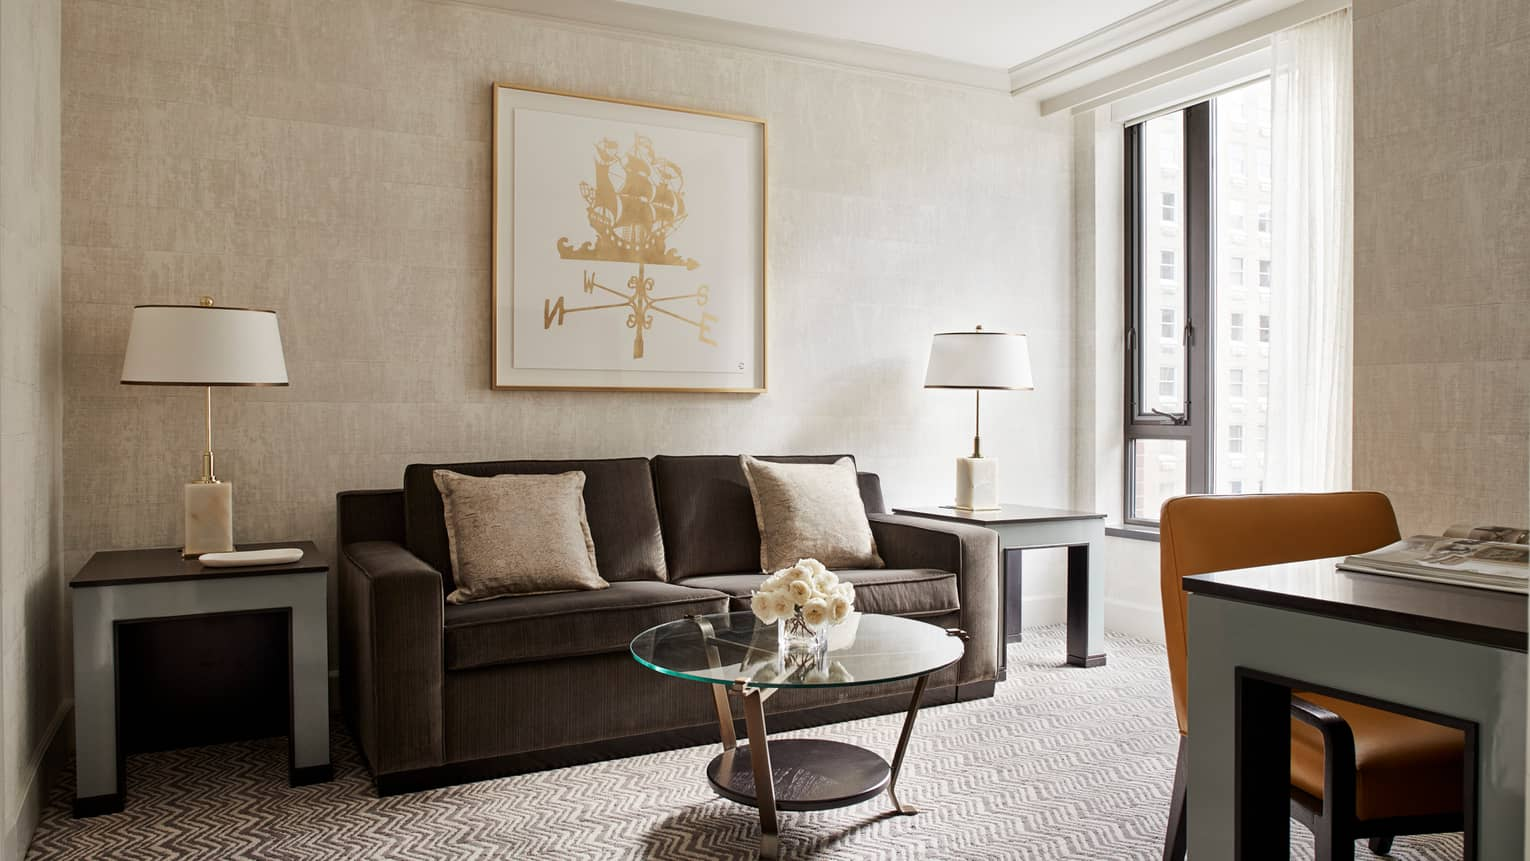 Four Seasons Executive Suite living room with dark grey sofa, beige pillows, framed gold print on wall, desk and sunny window